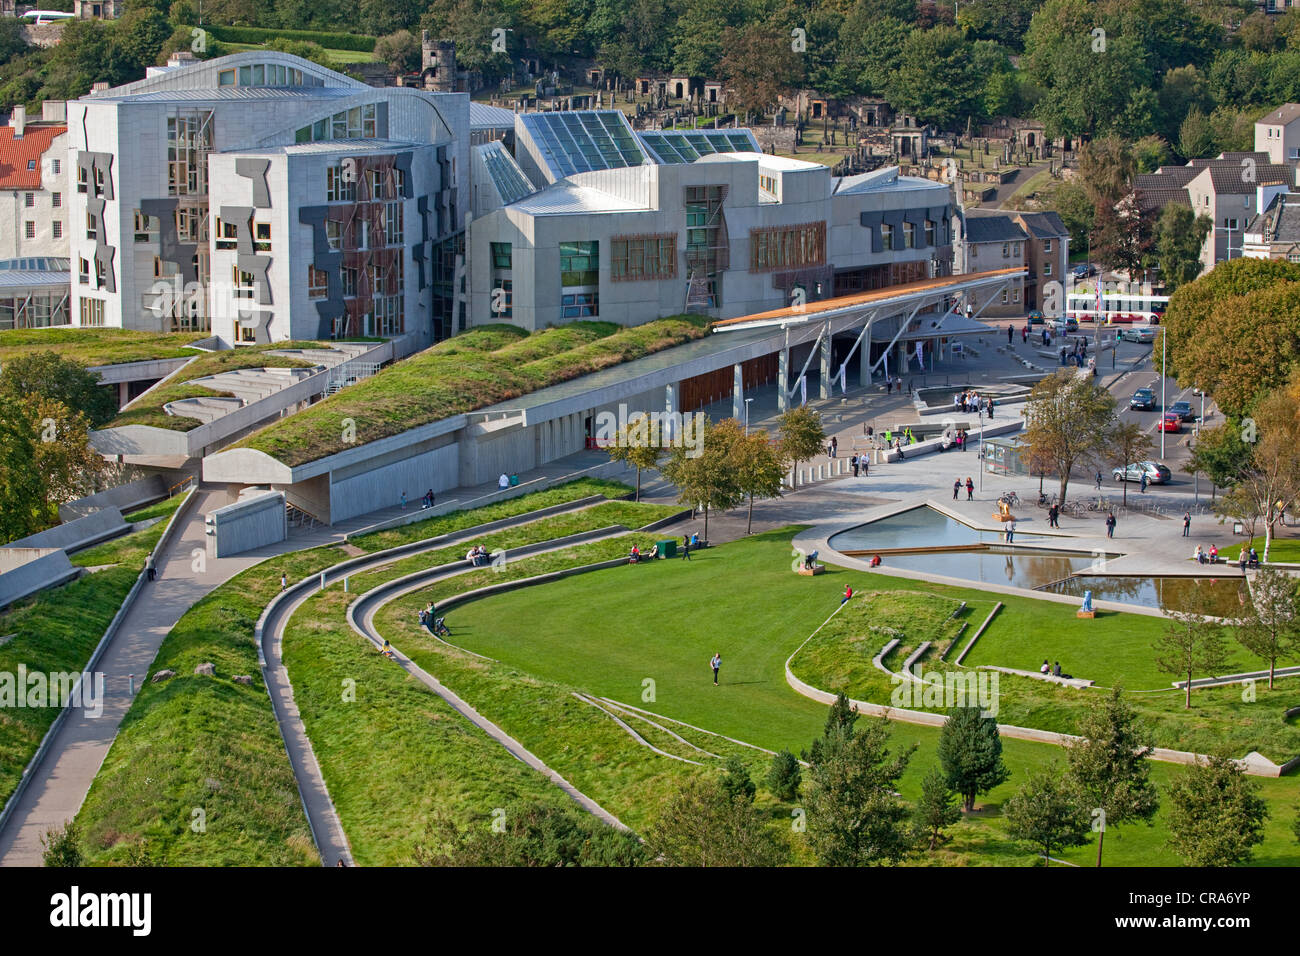 The Scottish Parliament at Holyrood viewed from the Salisbury Crags, Edinburgh. Stock Photo